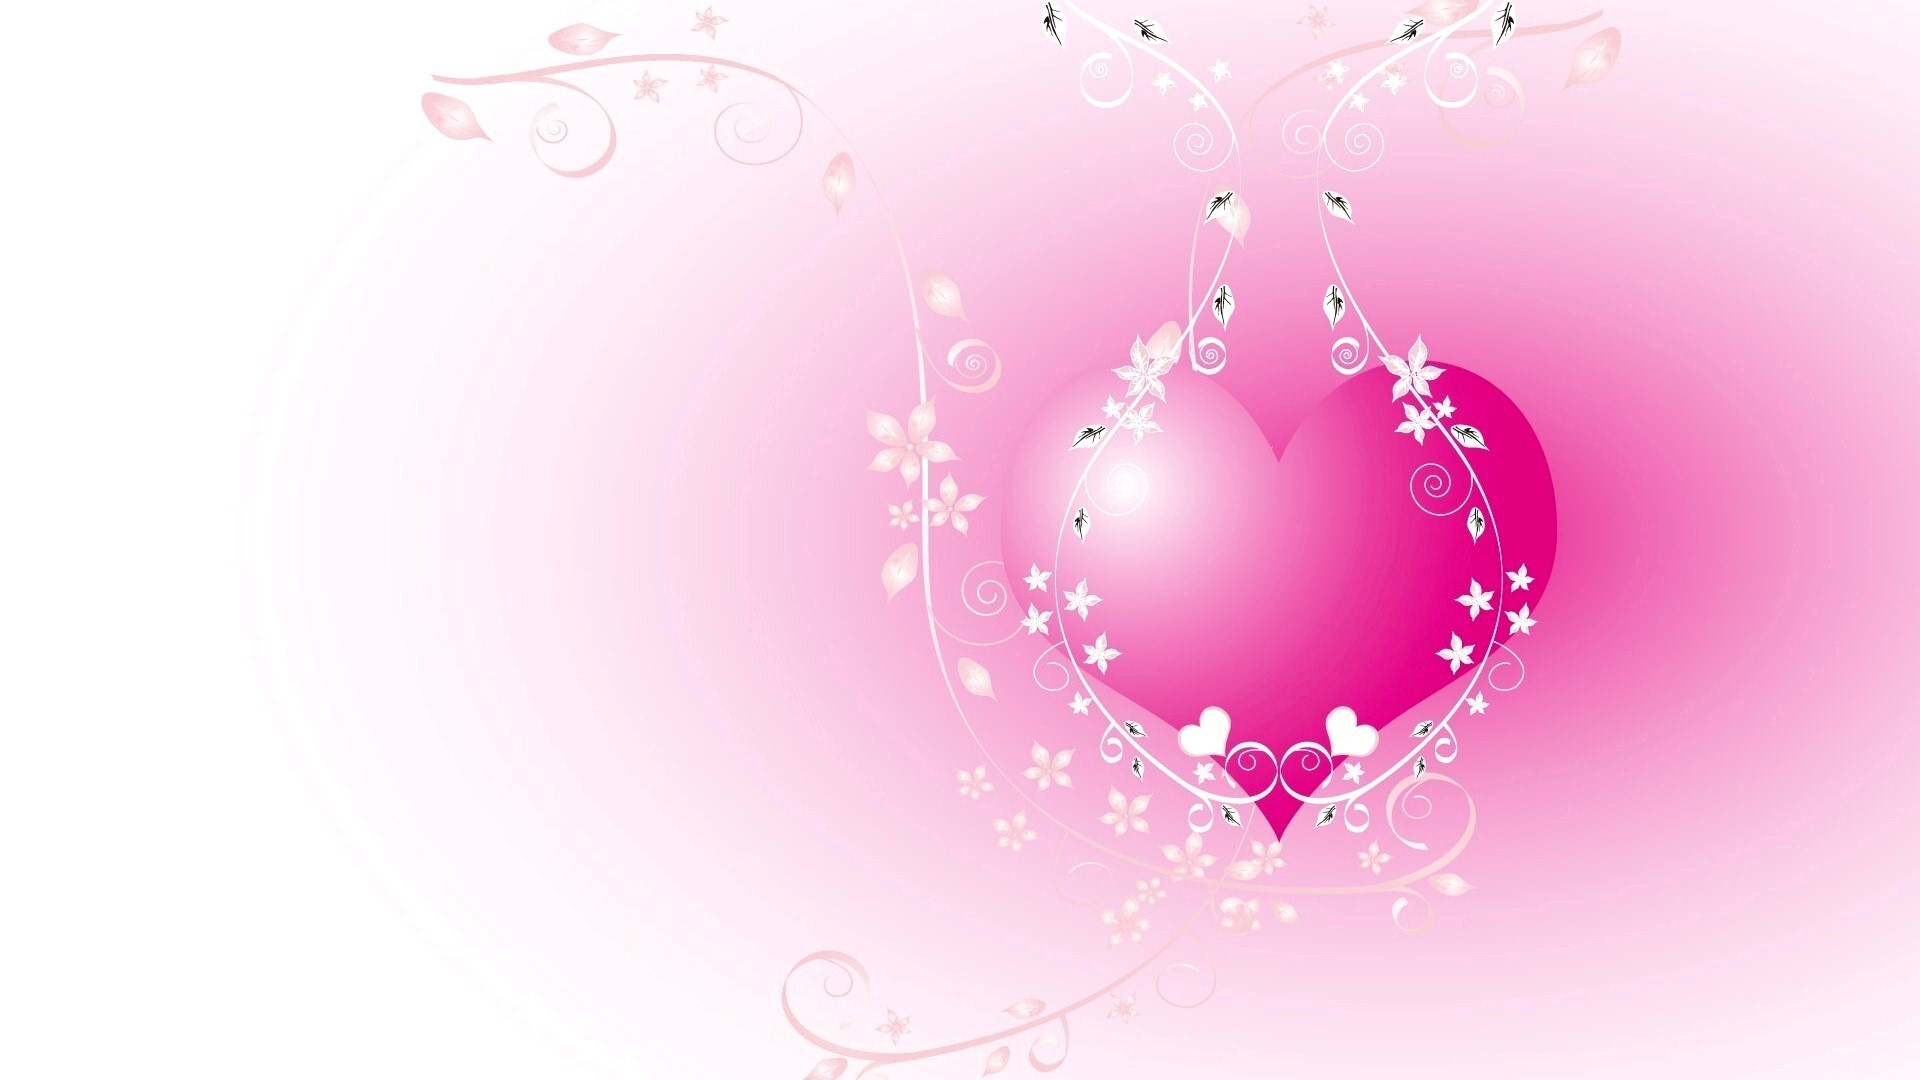 pink heart with white vector design | hd wallpapers